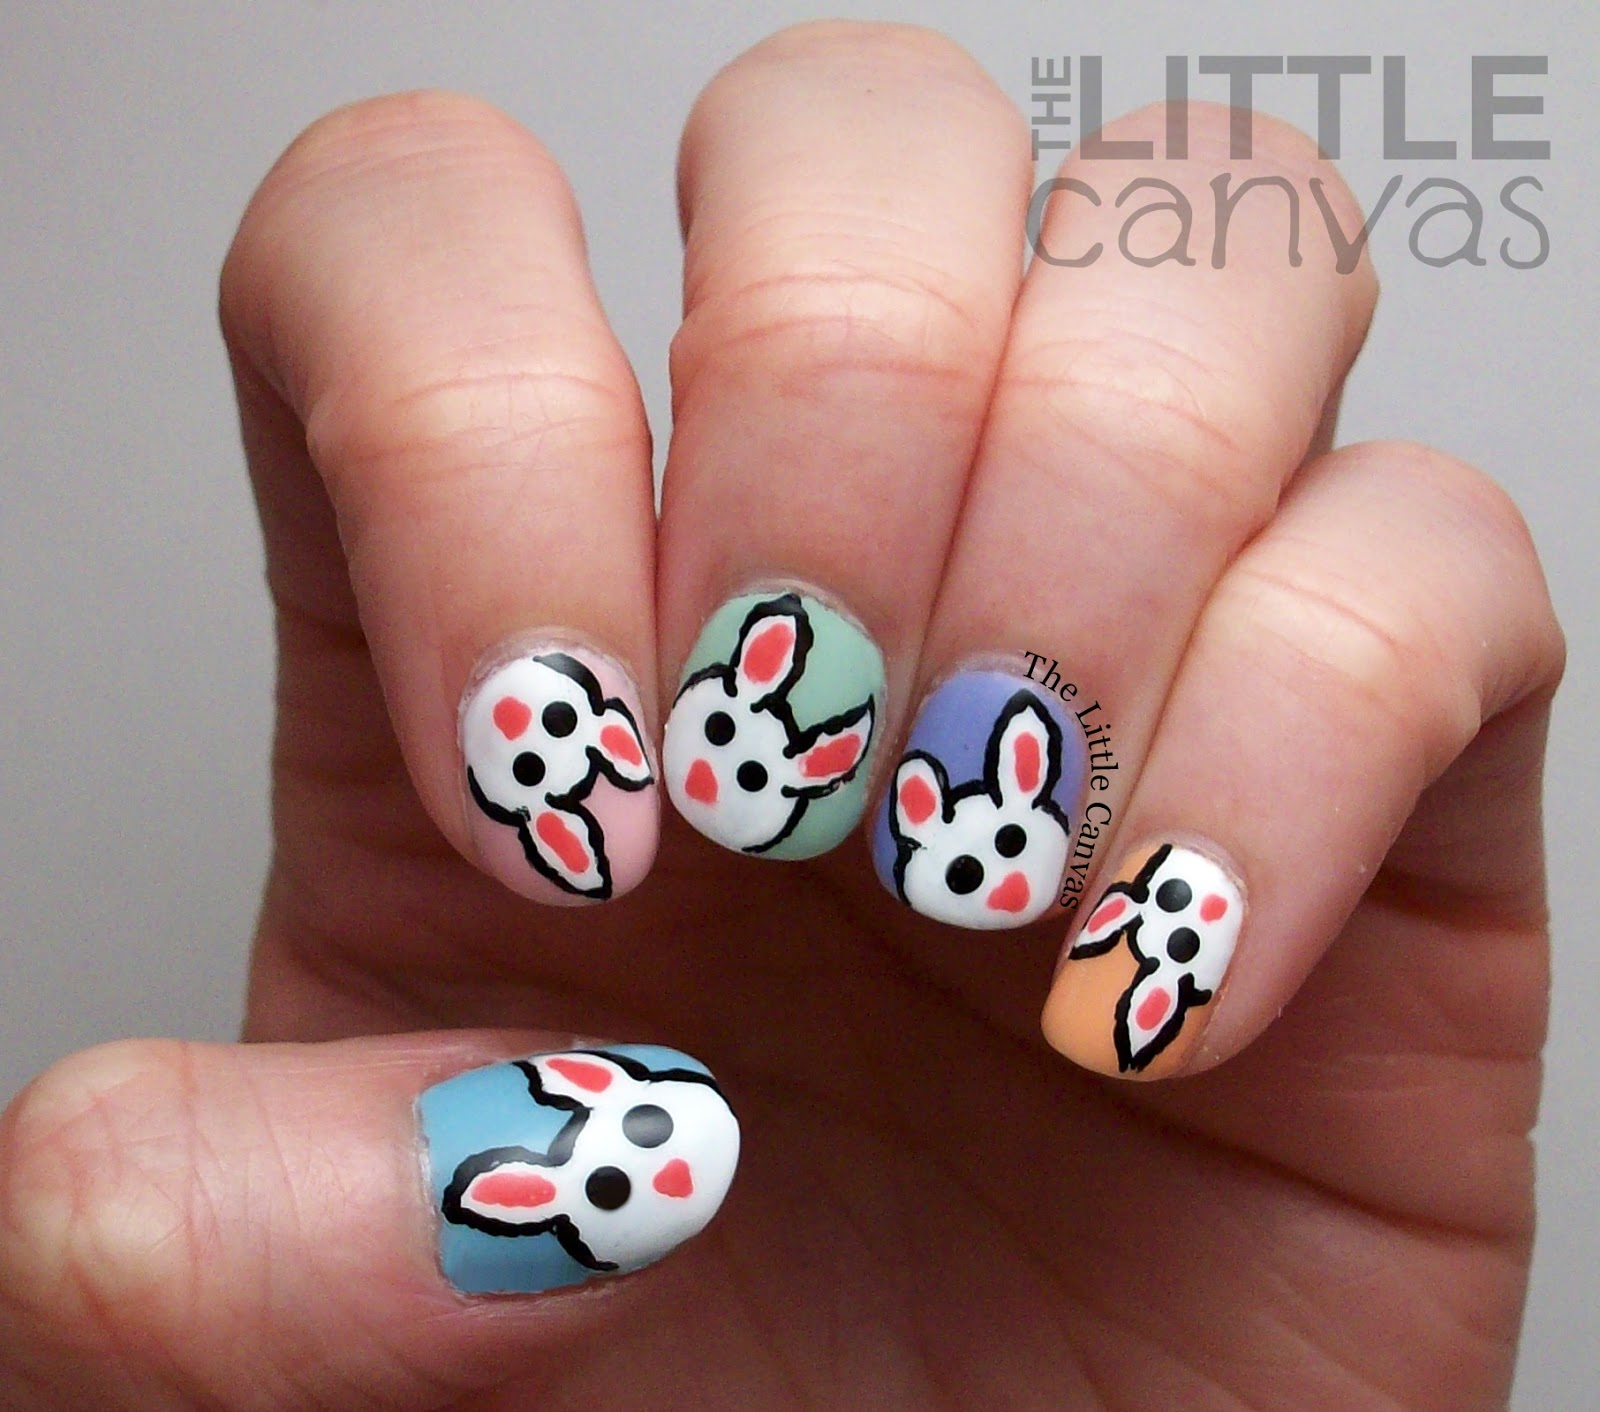 Easter Bunny Nail Art The Little Canvas